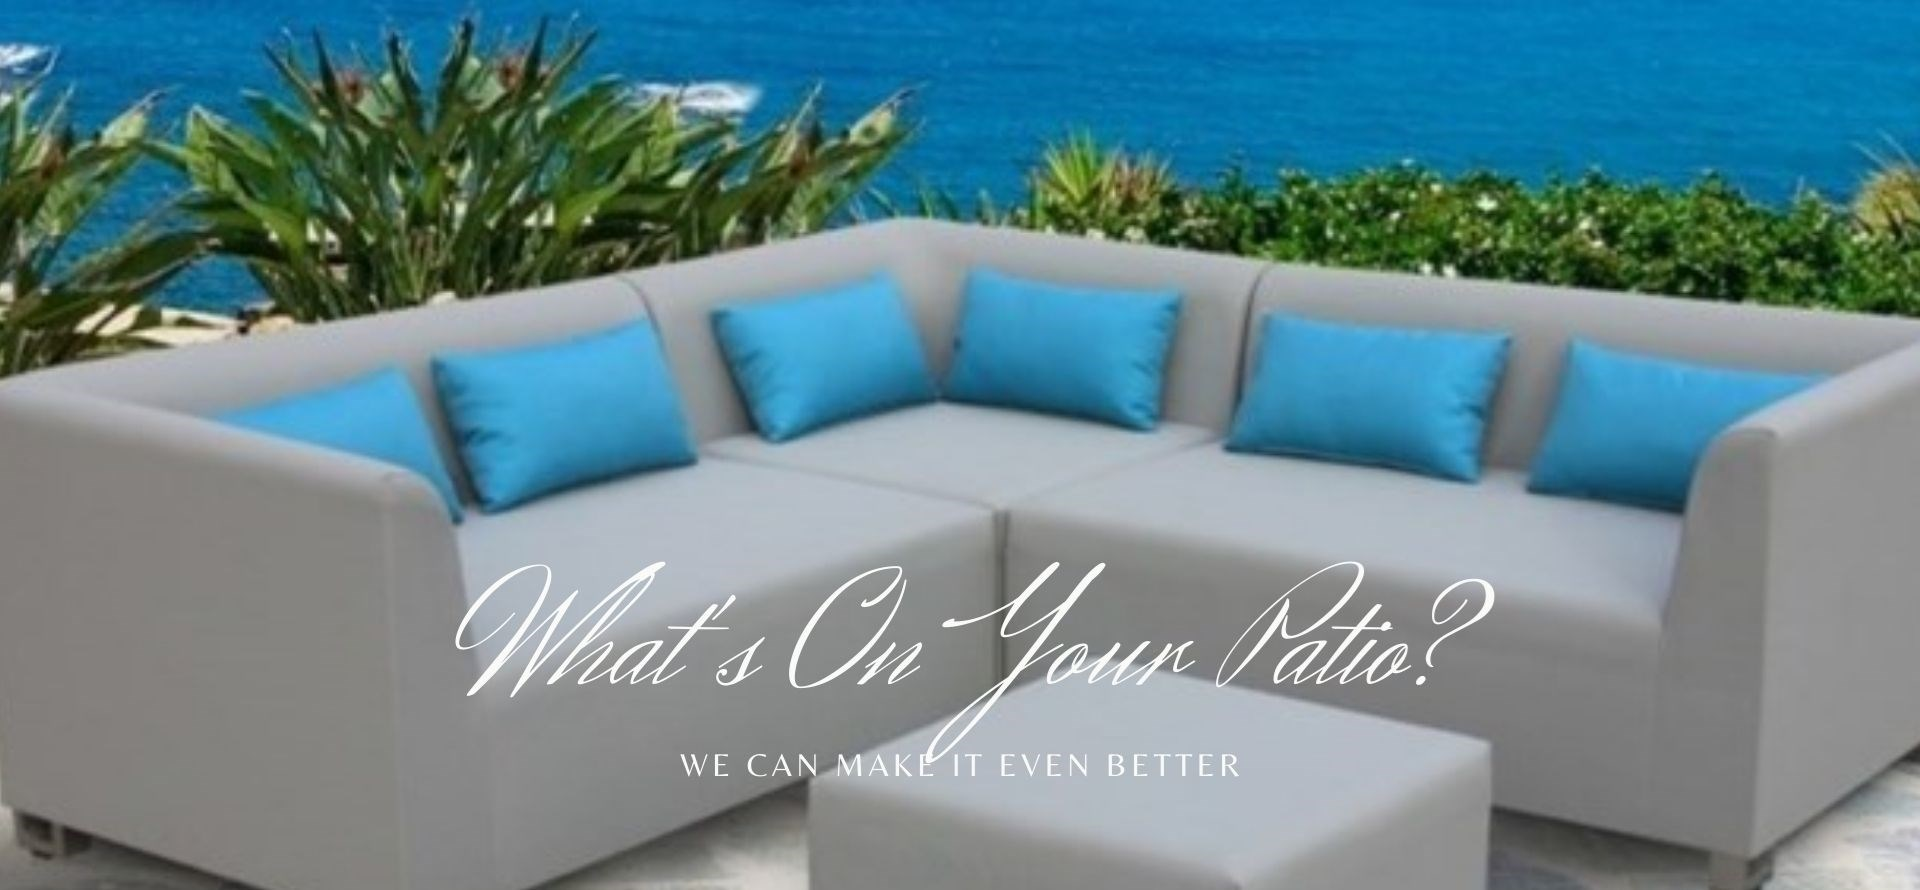 Whats on your patio